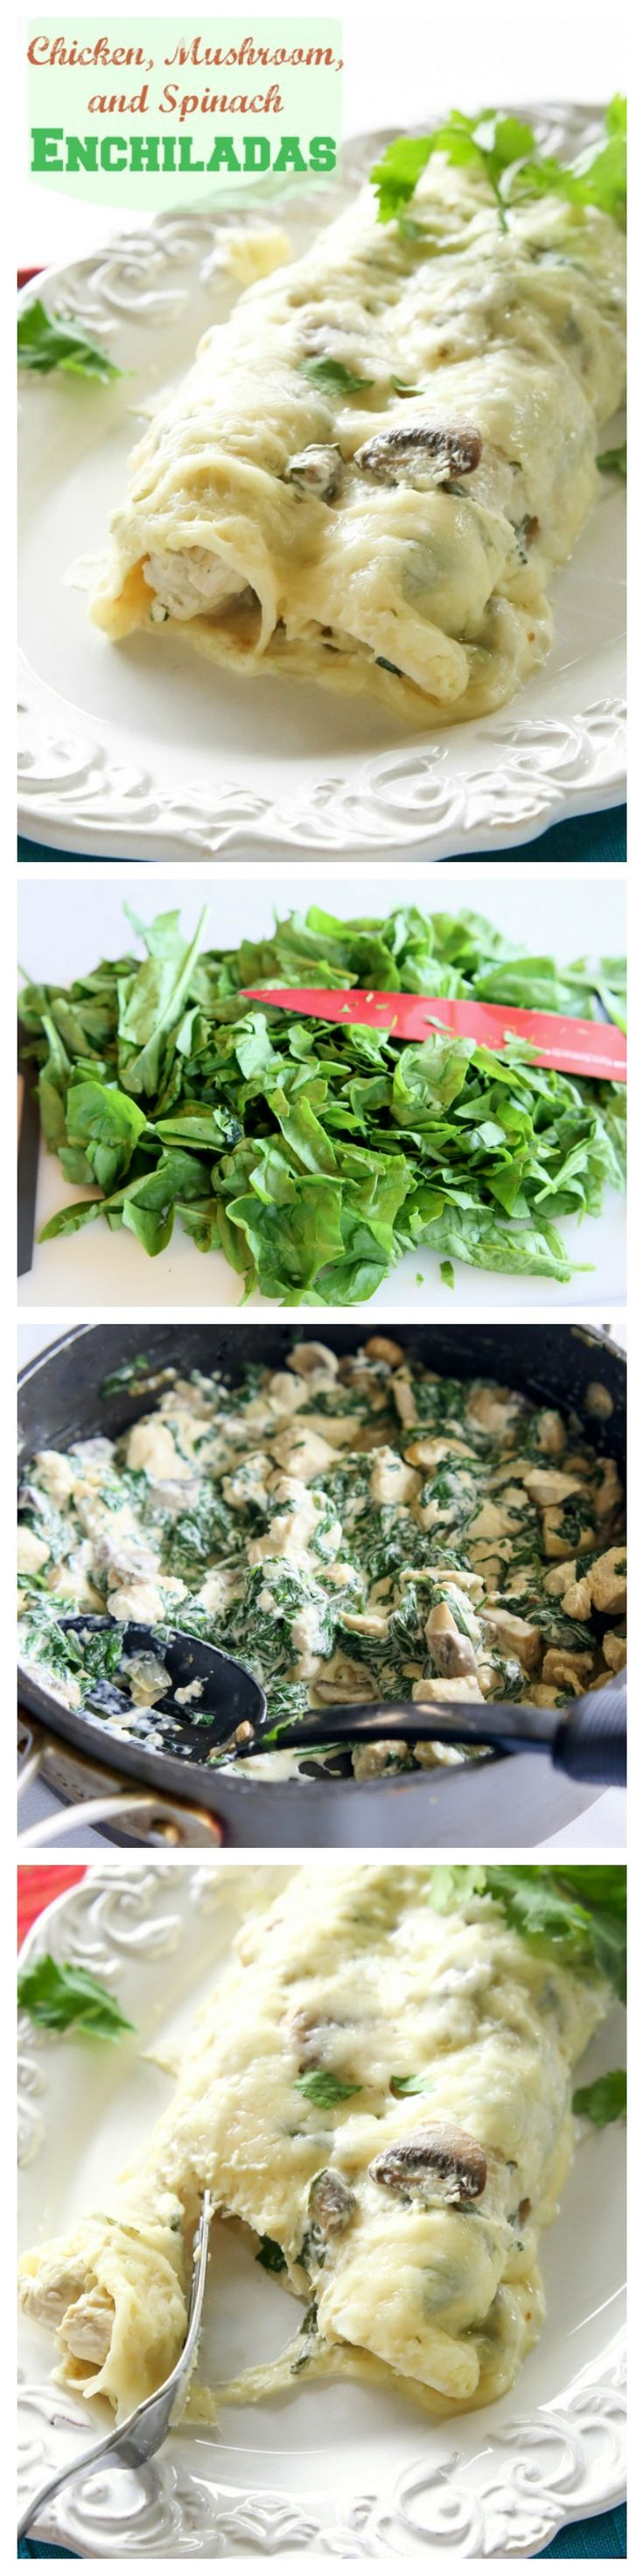 These Chicken, Spinach, and Mushroom Enchiladas are creamy enchiladas topped with a cilantro sour cream sauce. This dish is company worthy! the-girl-who-ate-everything.com